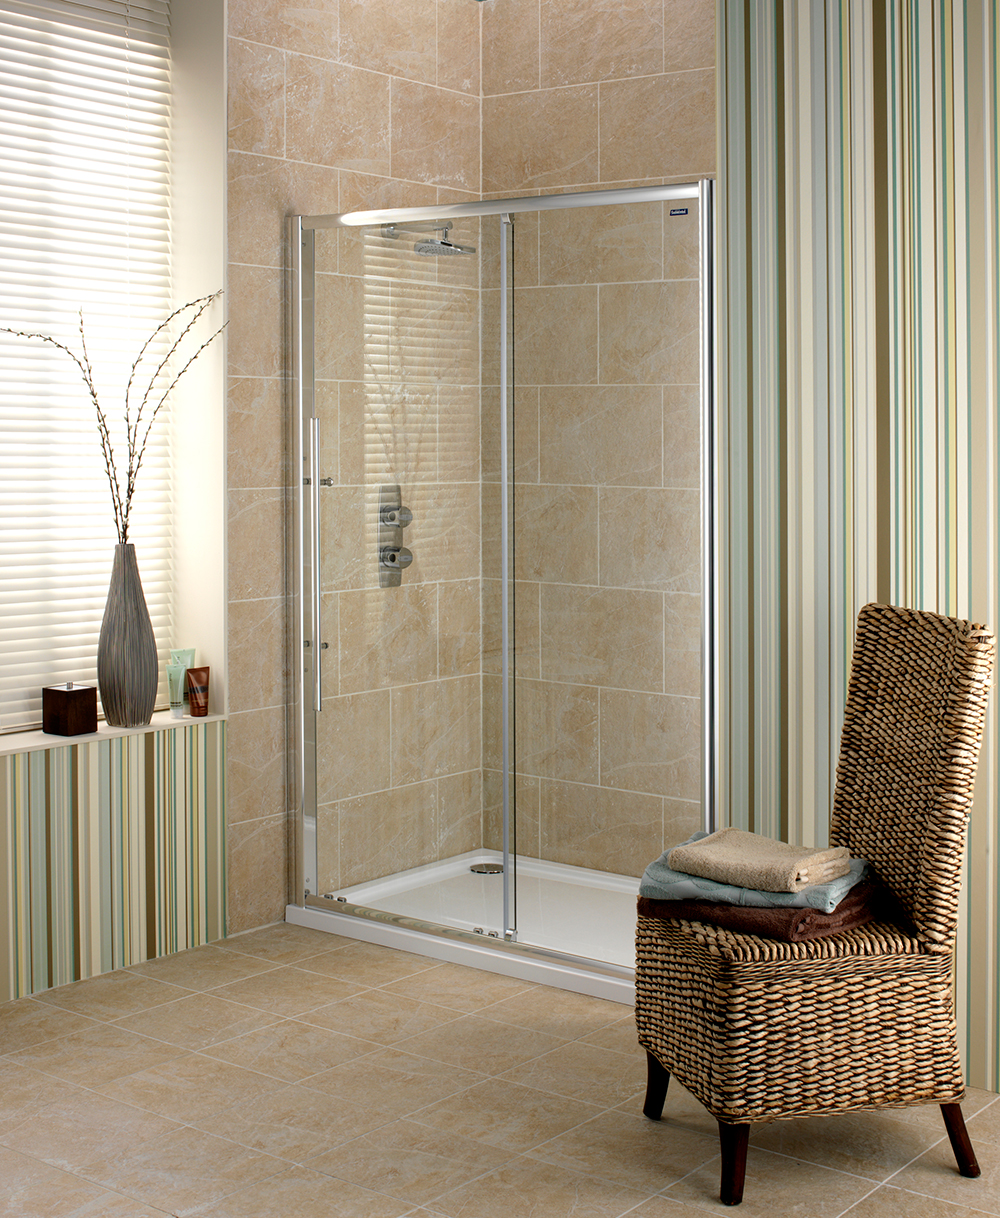 Showerlux Linea Touch In A Recess & Don\u0027t Buy Showerlux Shower Doors...Until You\u0027ve Read This Guide